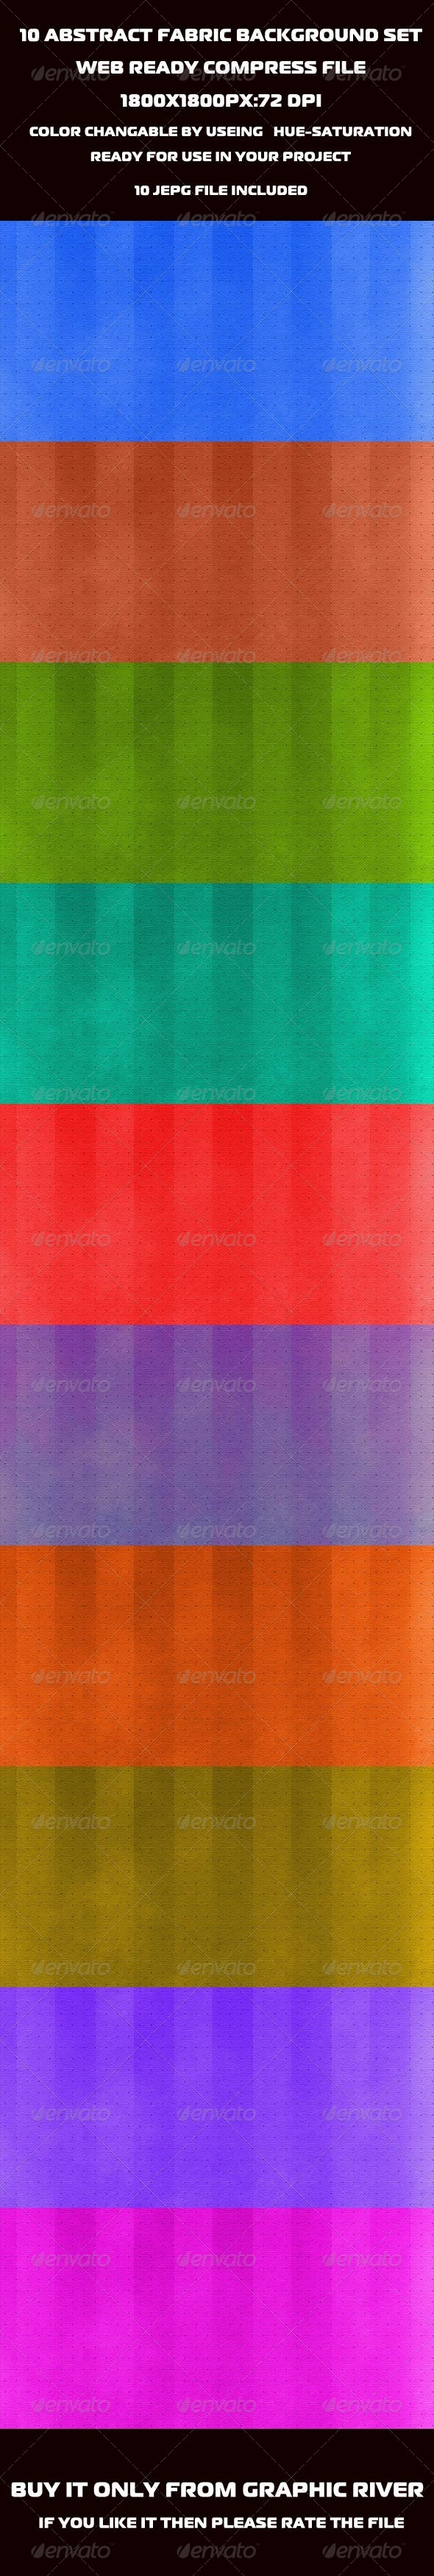 Abstract Fabric Background Set. - Miscellaneous Backgrounds